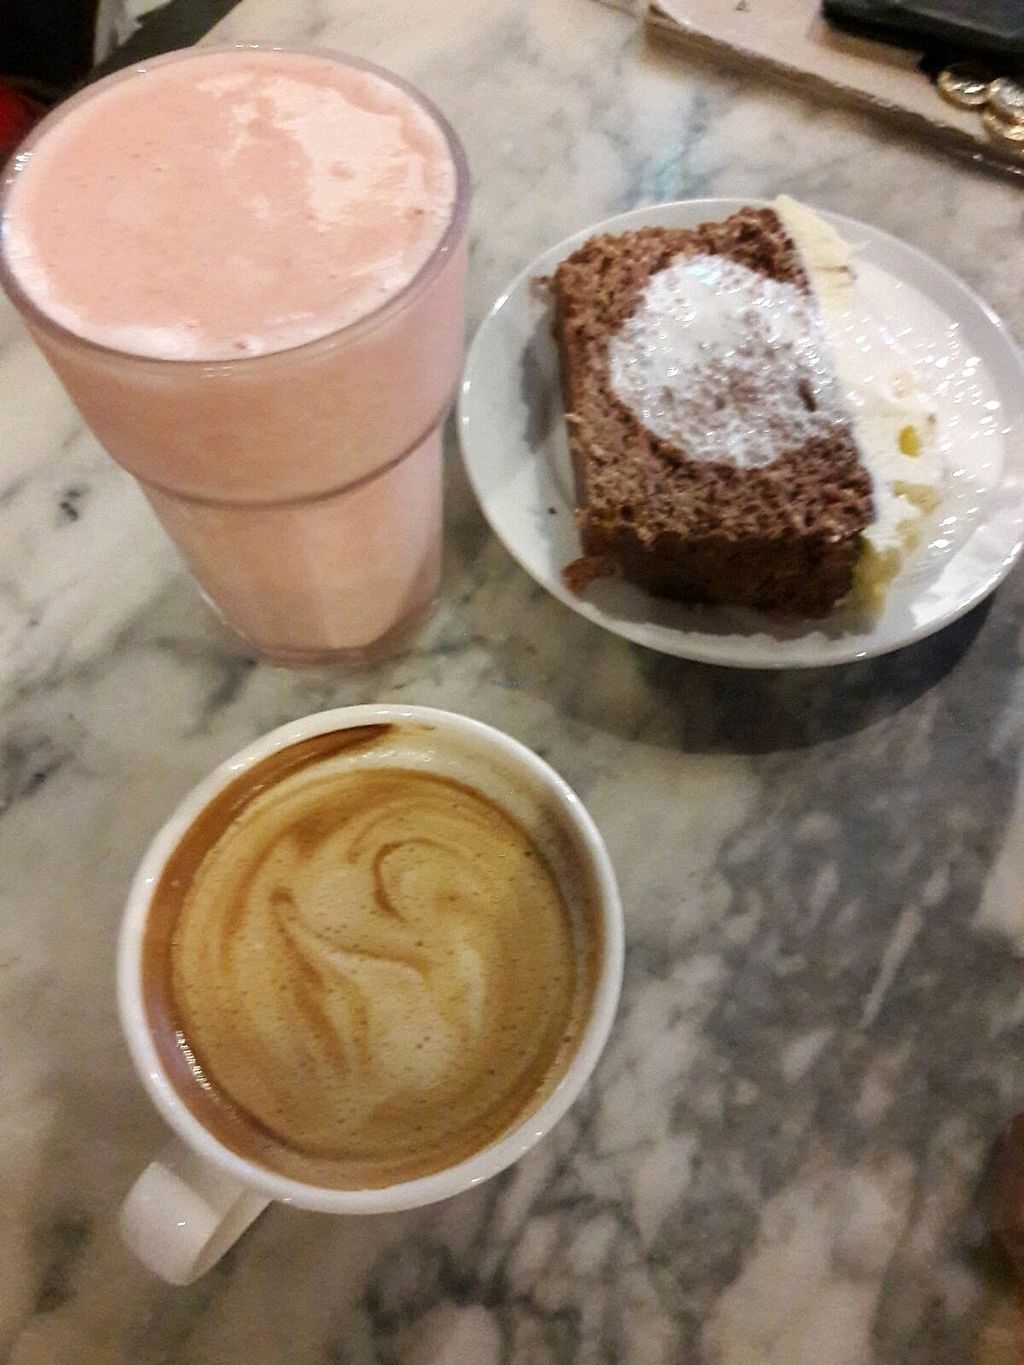 """Photo of Alpine Coffee Shop and Gallery  by <a href=""""/members/profile/VeganVegan2"""">VeganVegan2</a> <br/>Chocolate & Coconut Cake! <br/> February 14, 2018  - <a href='/contact/abuse/image/18612/359314'>Report</a>"""